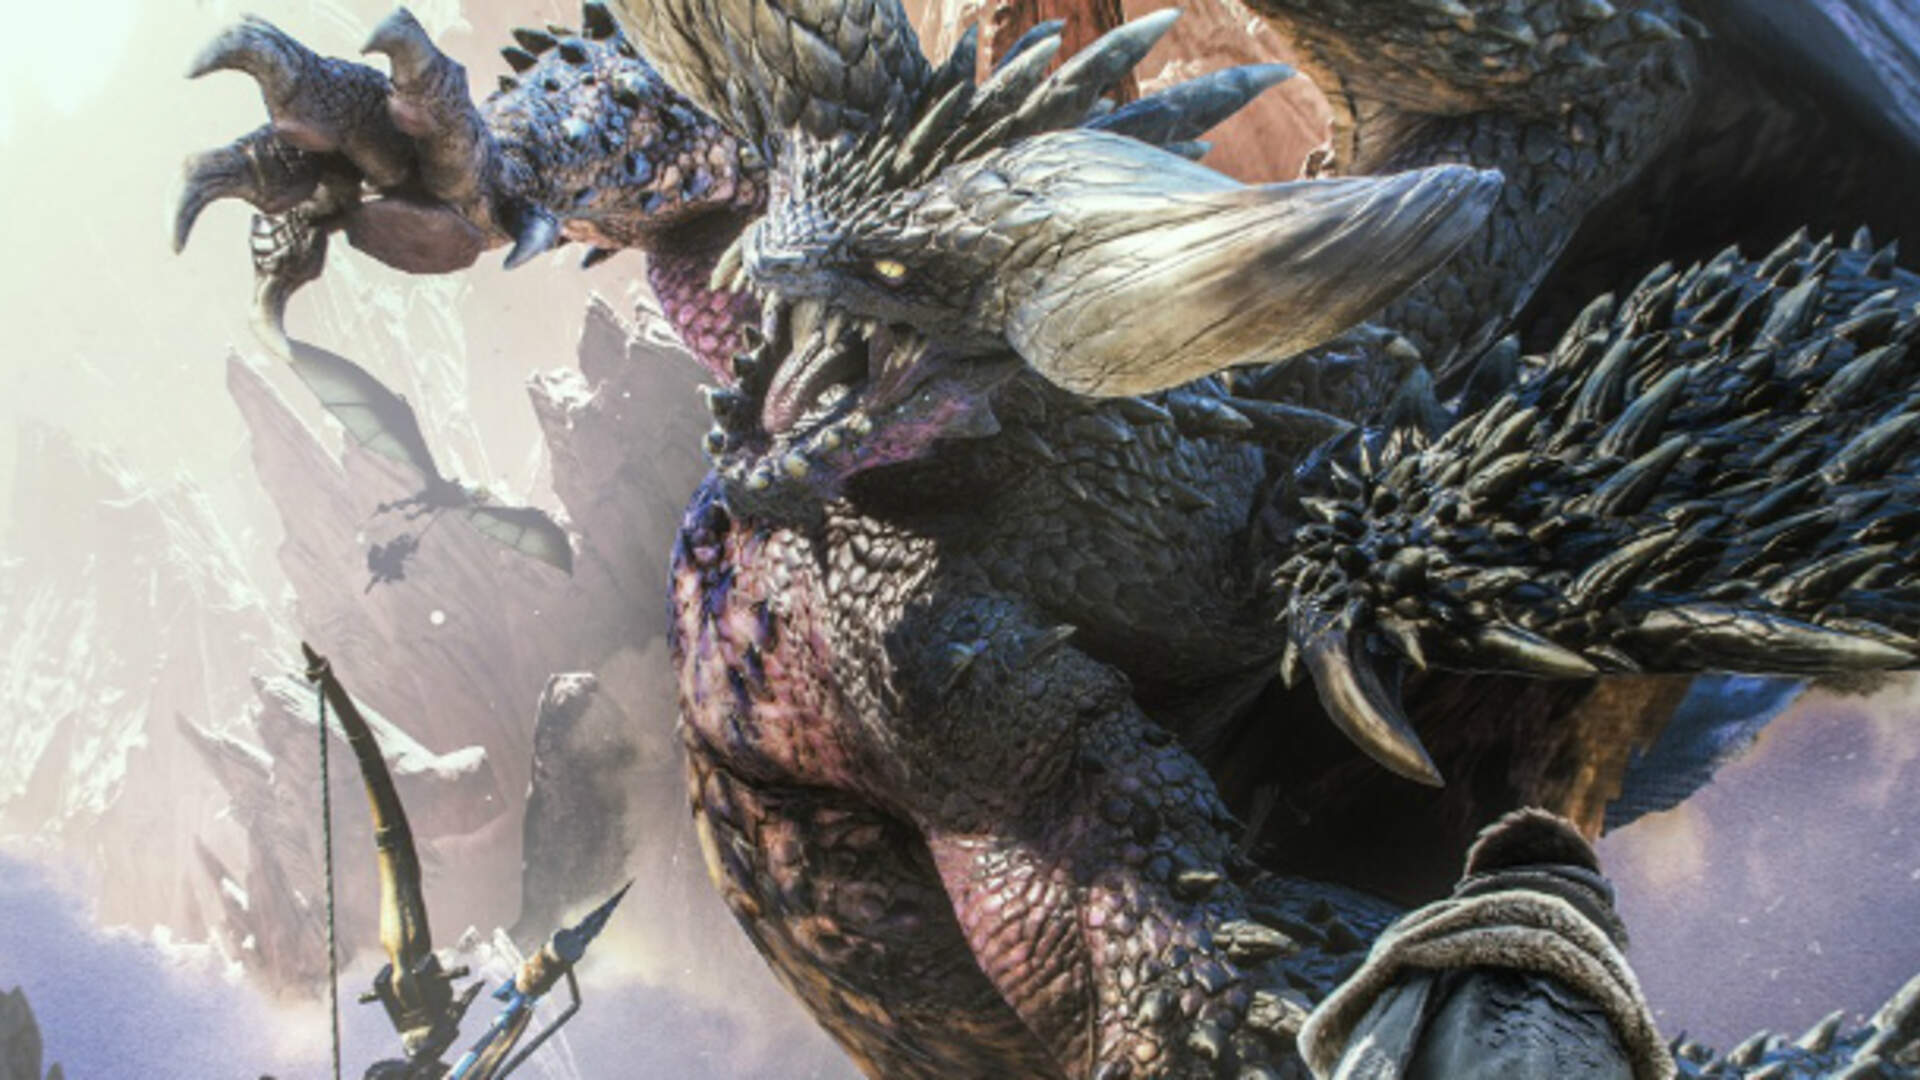 Monster Hunter World Reaches 8.3 Million Units Sold, Capcom's Expectations High for Devil May Cry 5 and Resident Evil 2